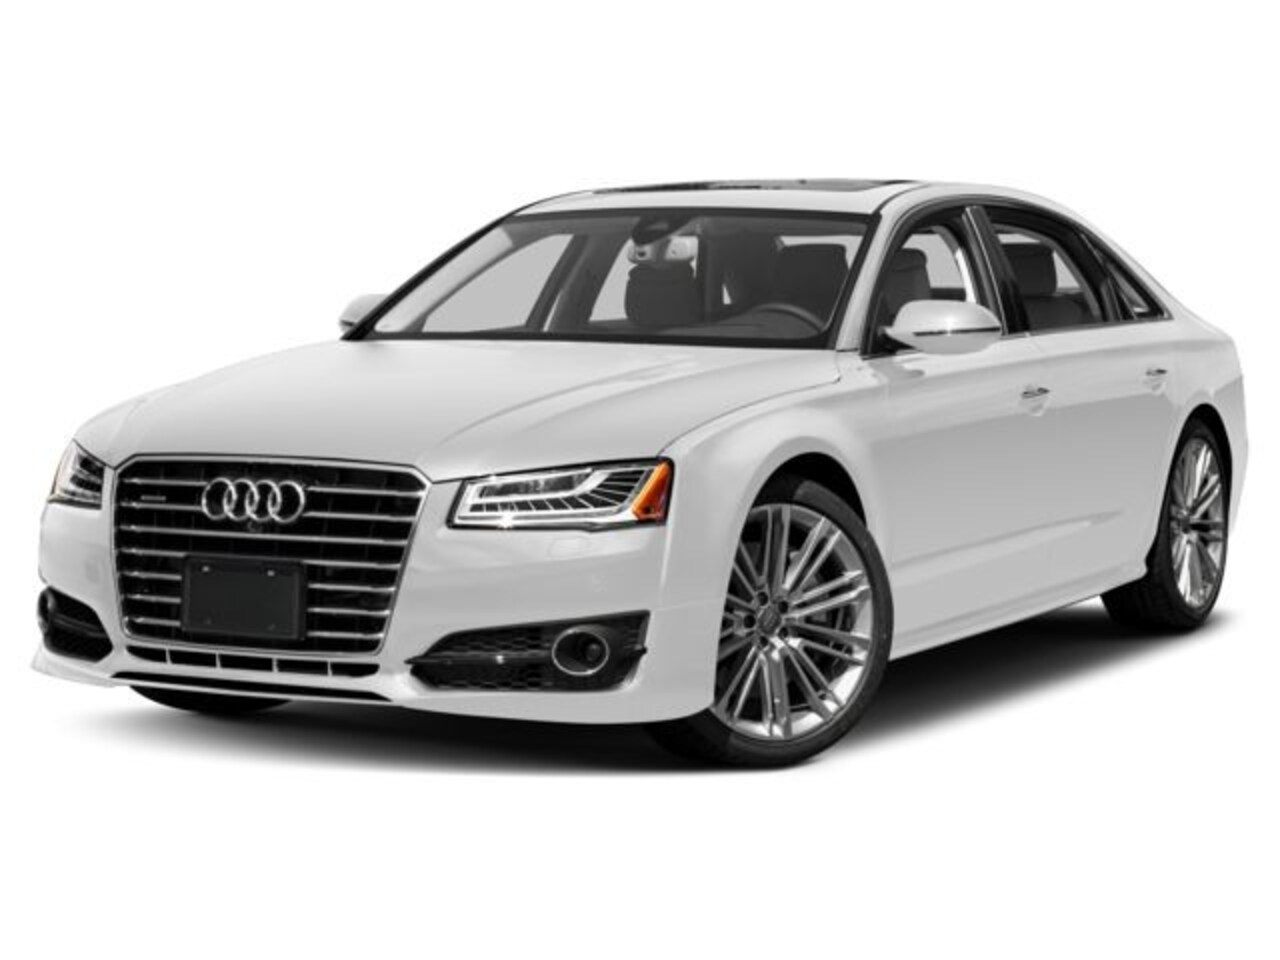 2018 Audi A8 LWB 4.0T Quattro 8sp Tiptronic Sedan